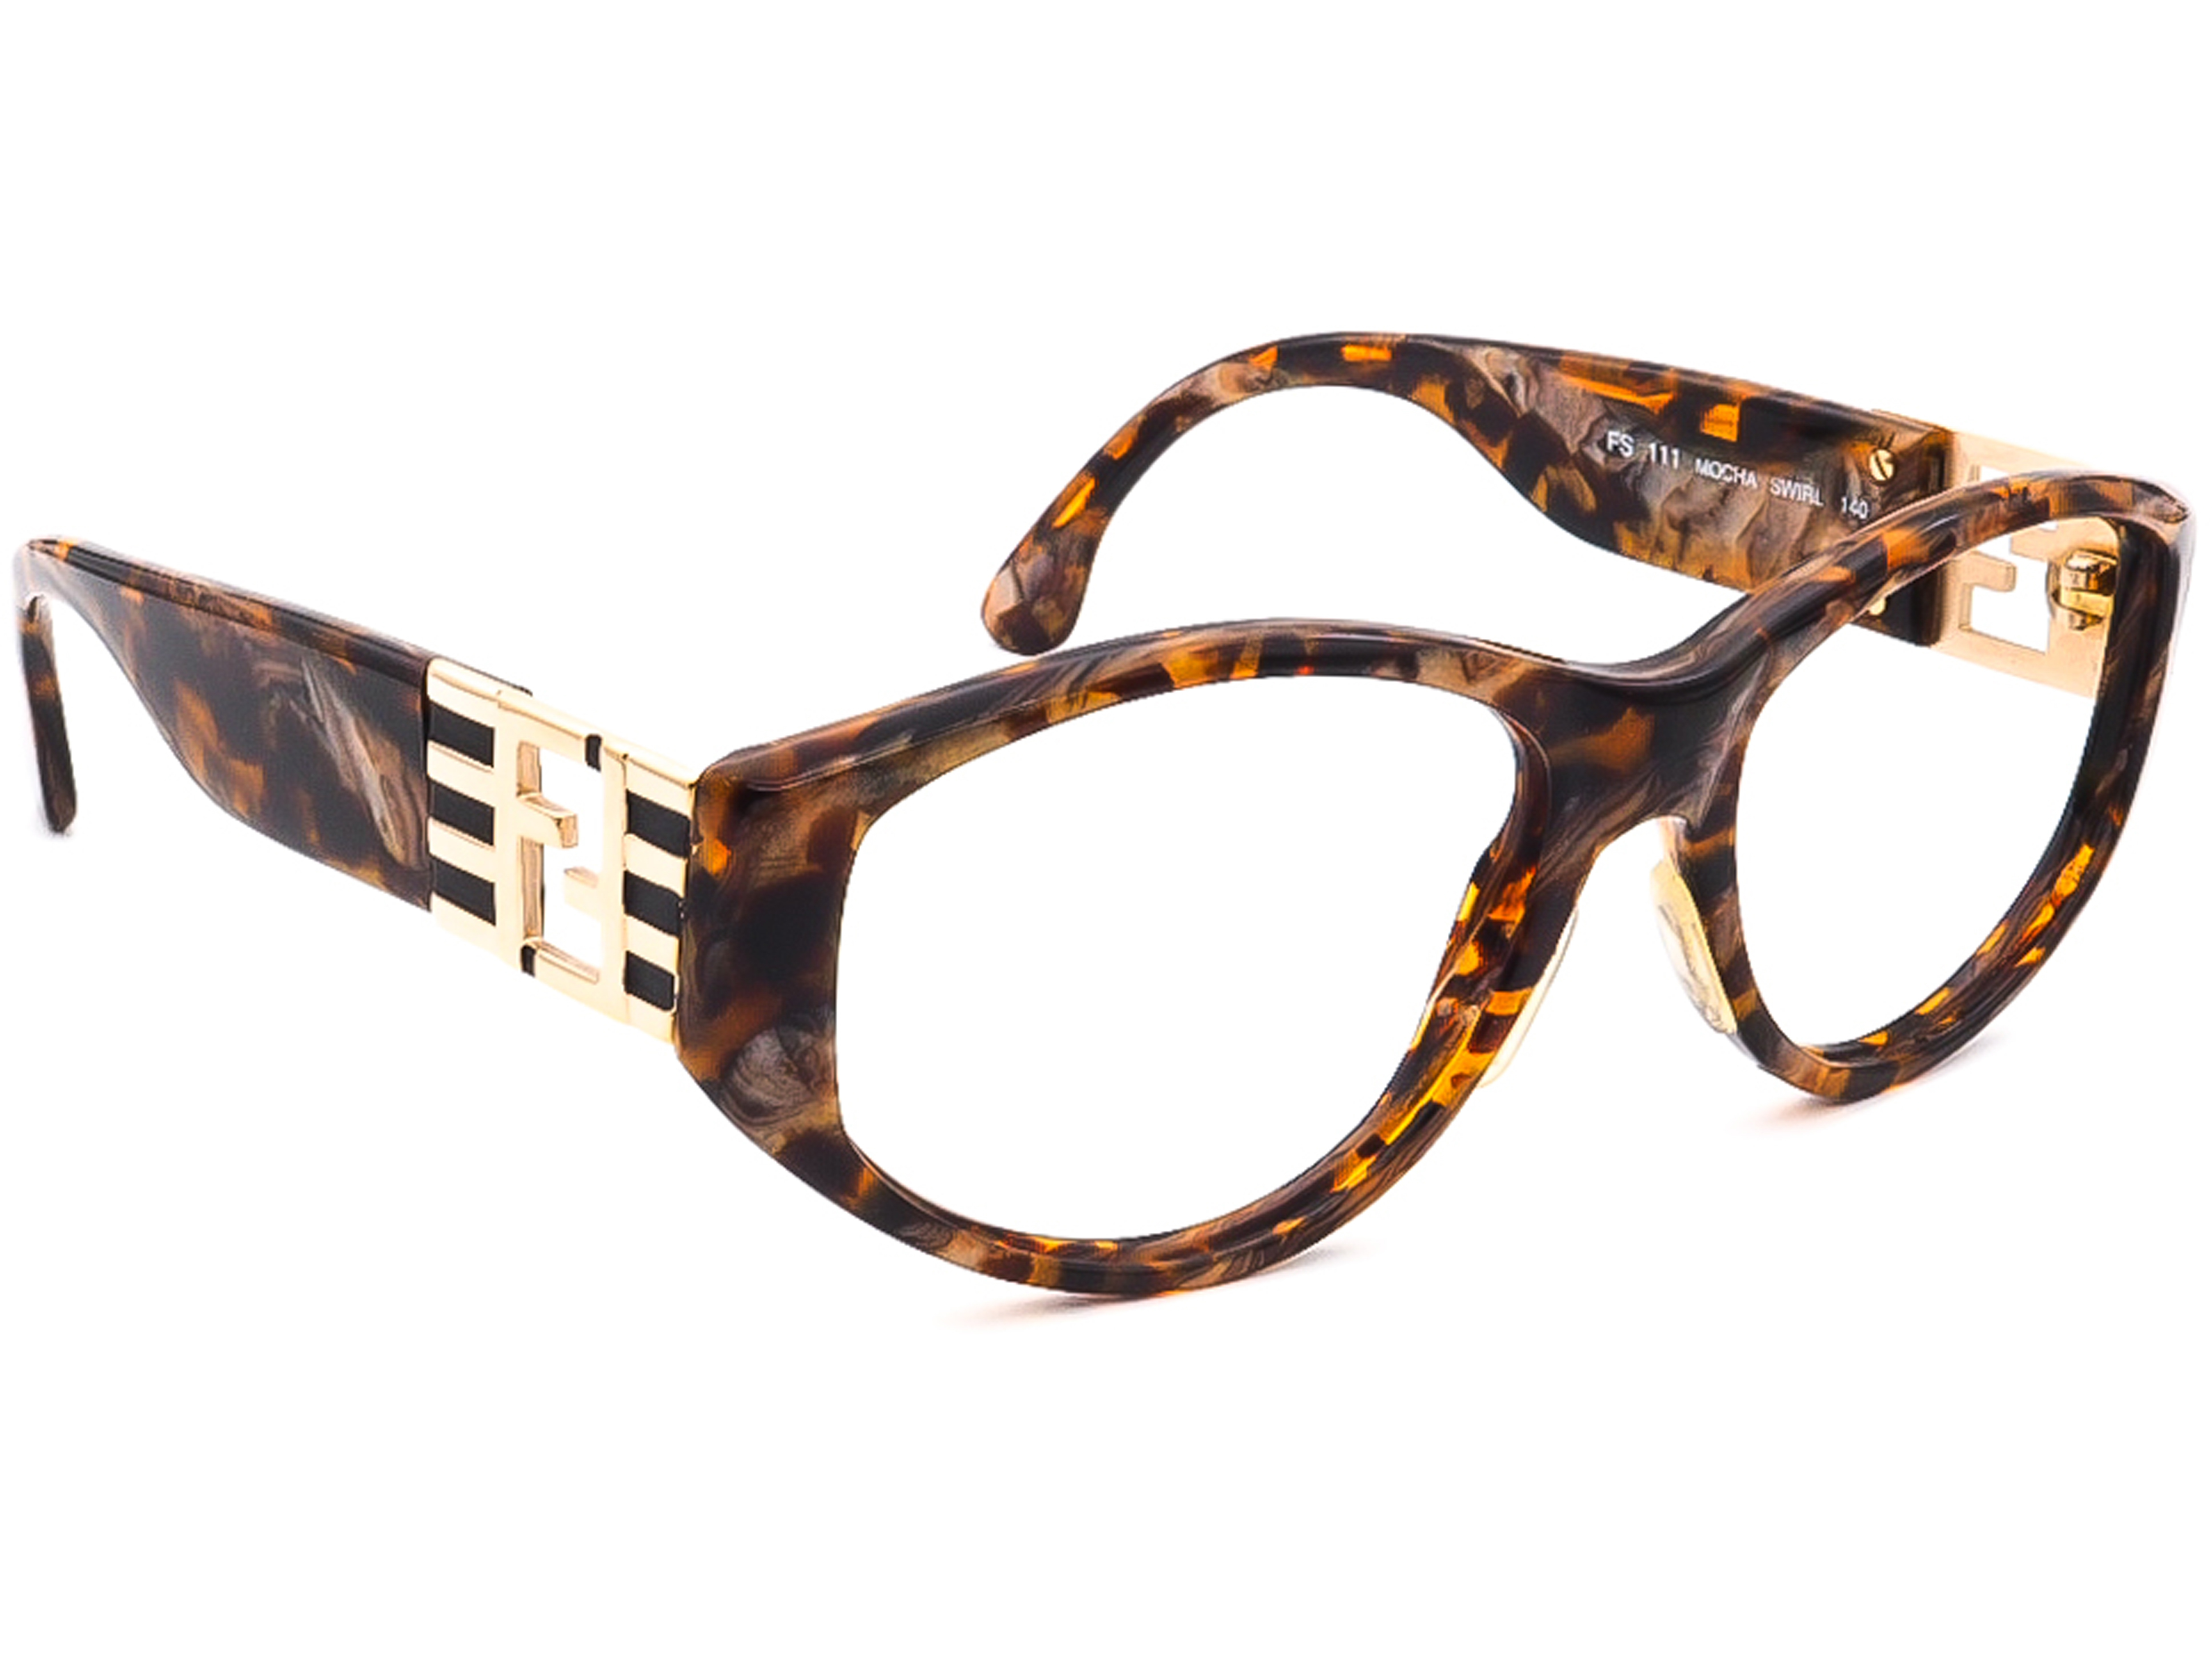 Fendi FS 111 Mocha SWIRL Sunglasses Frame Only